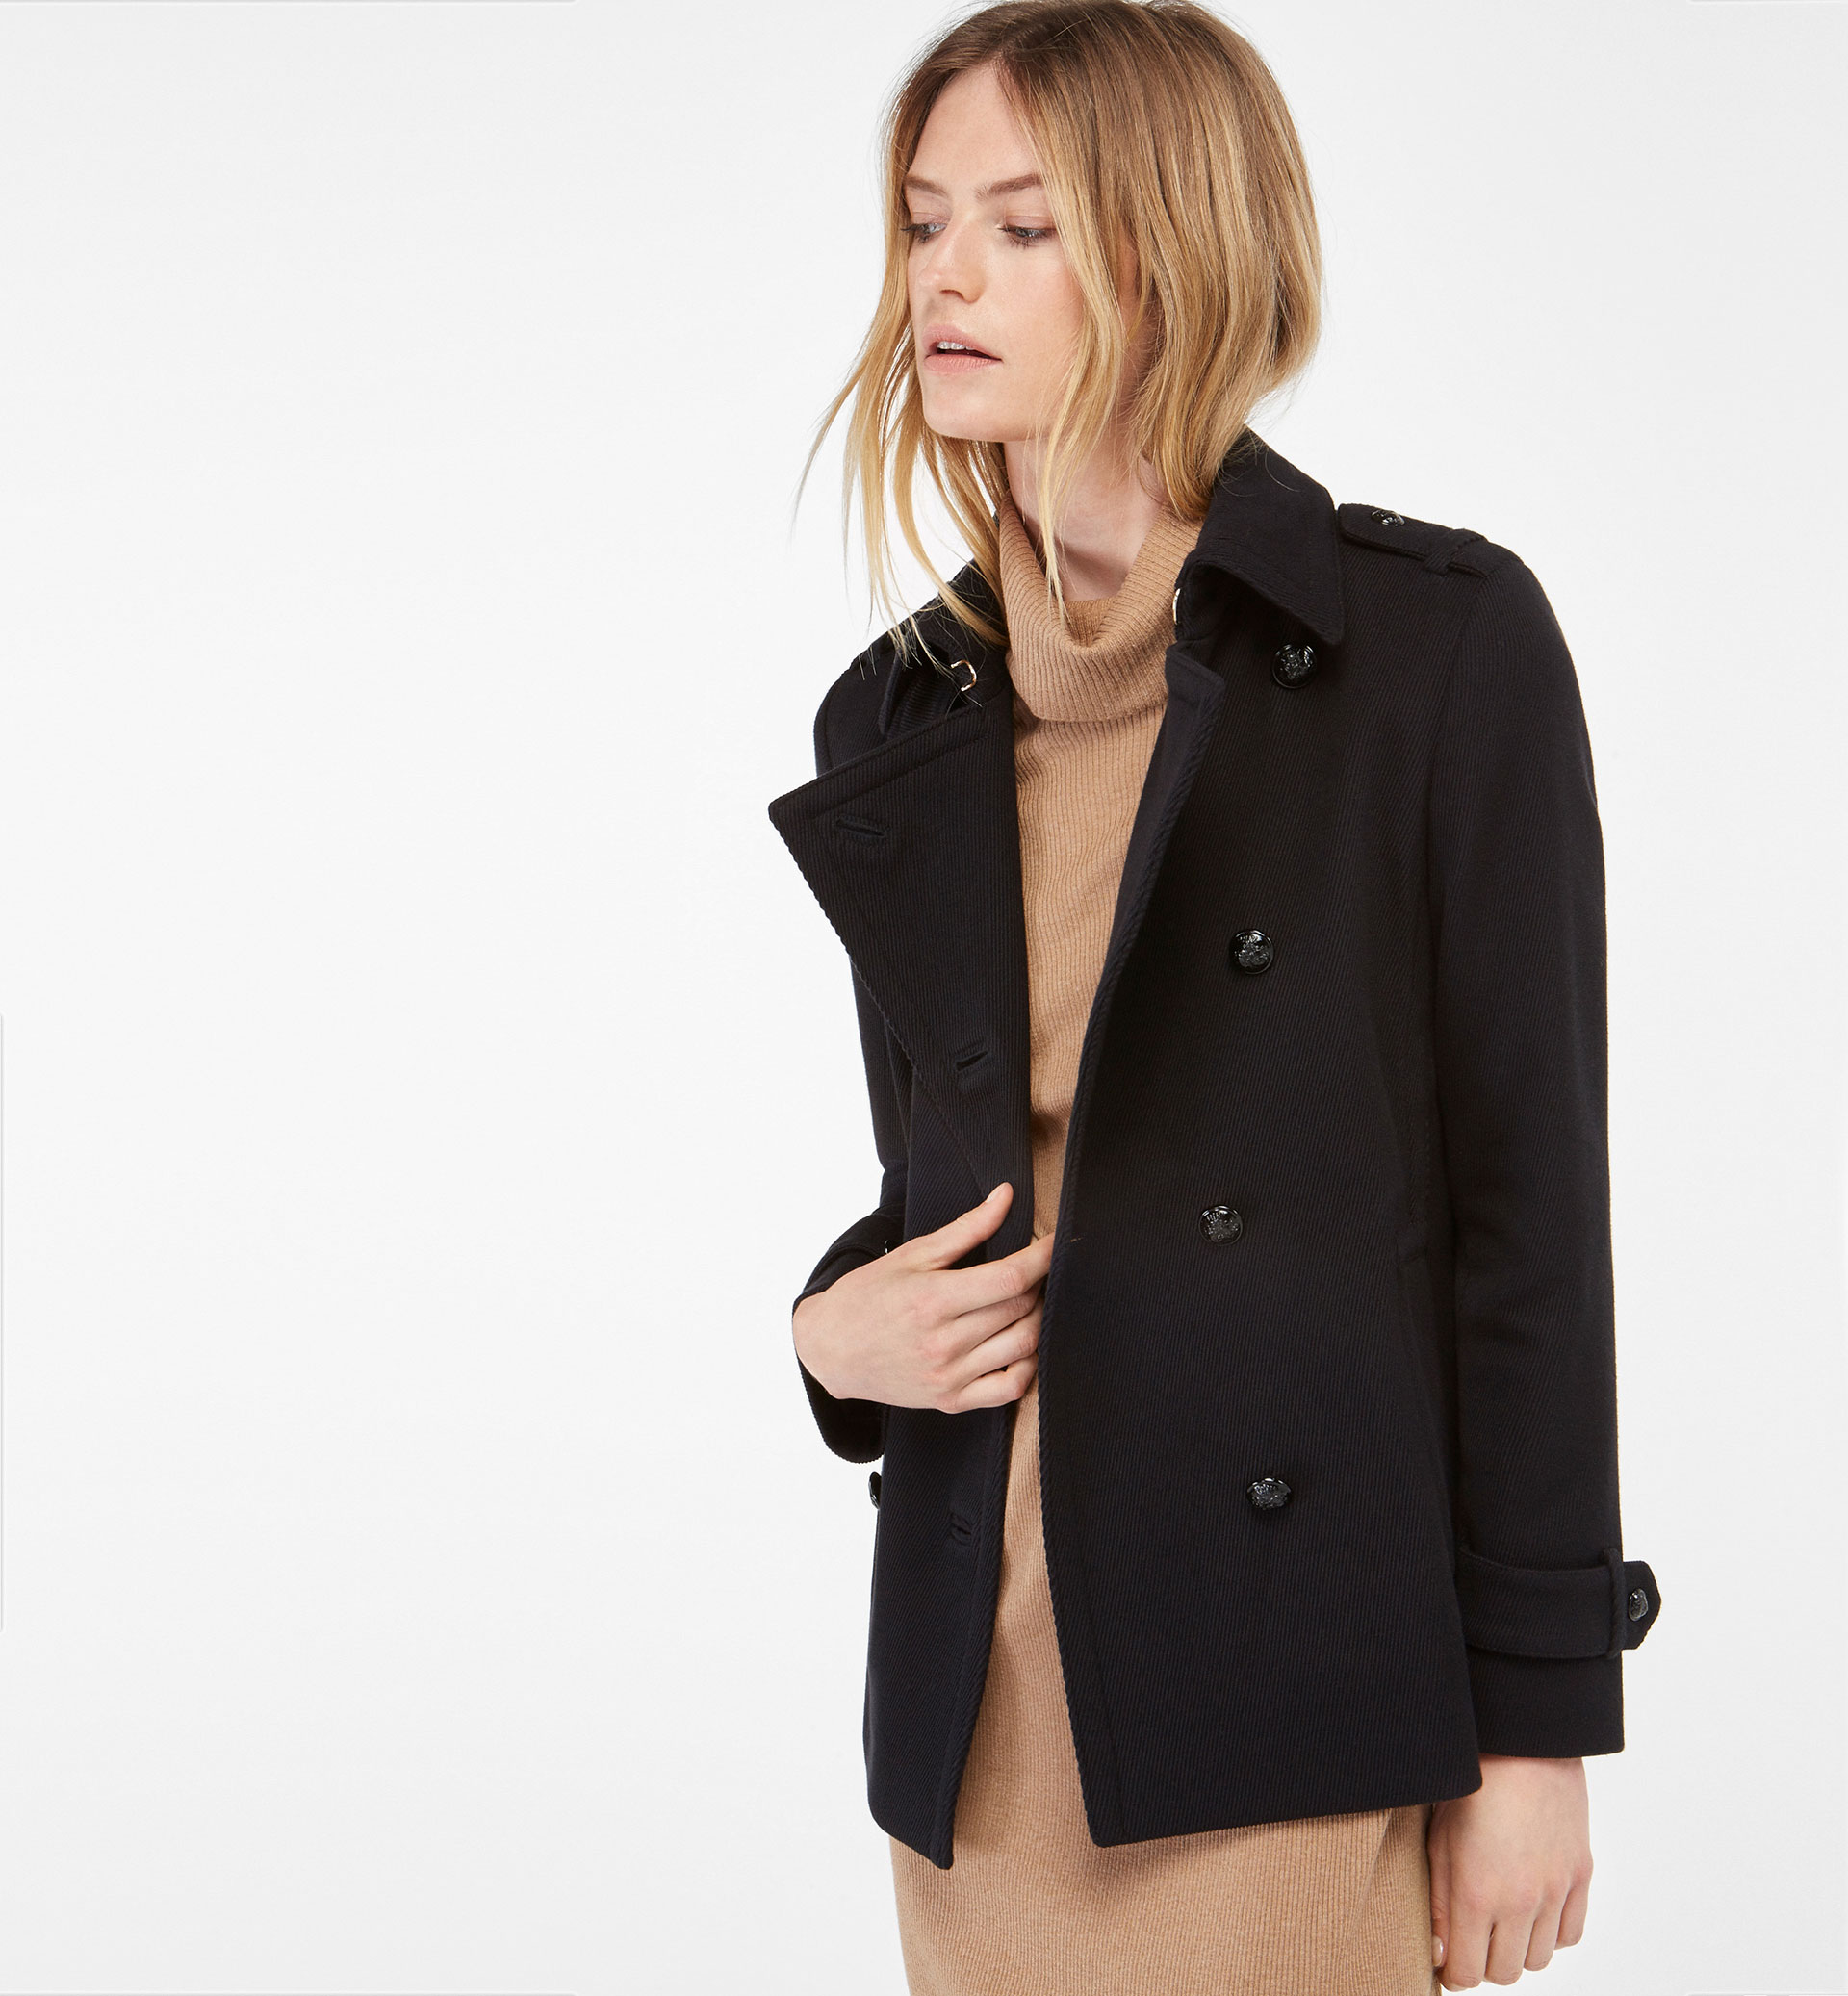 DOUBLE BREASTED THREE-QUARTER LENGTH JACKET